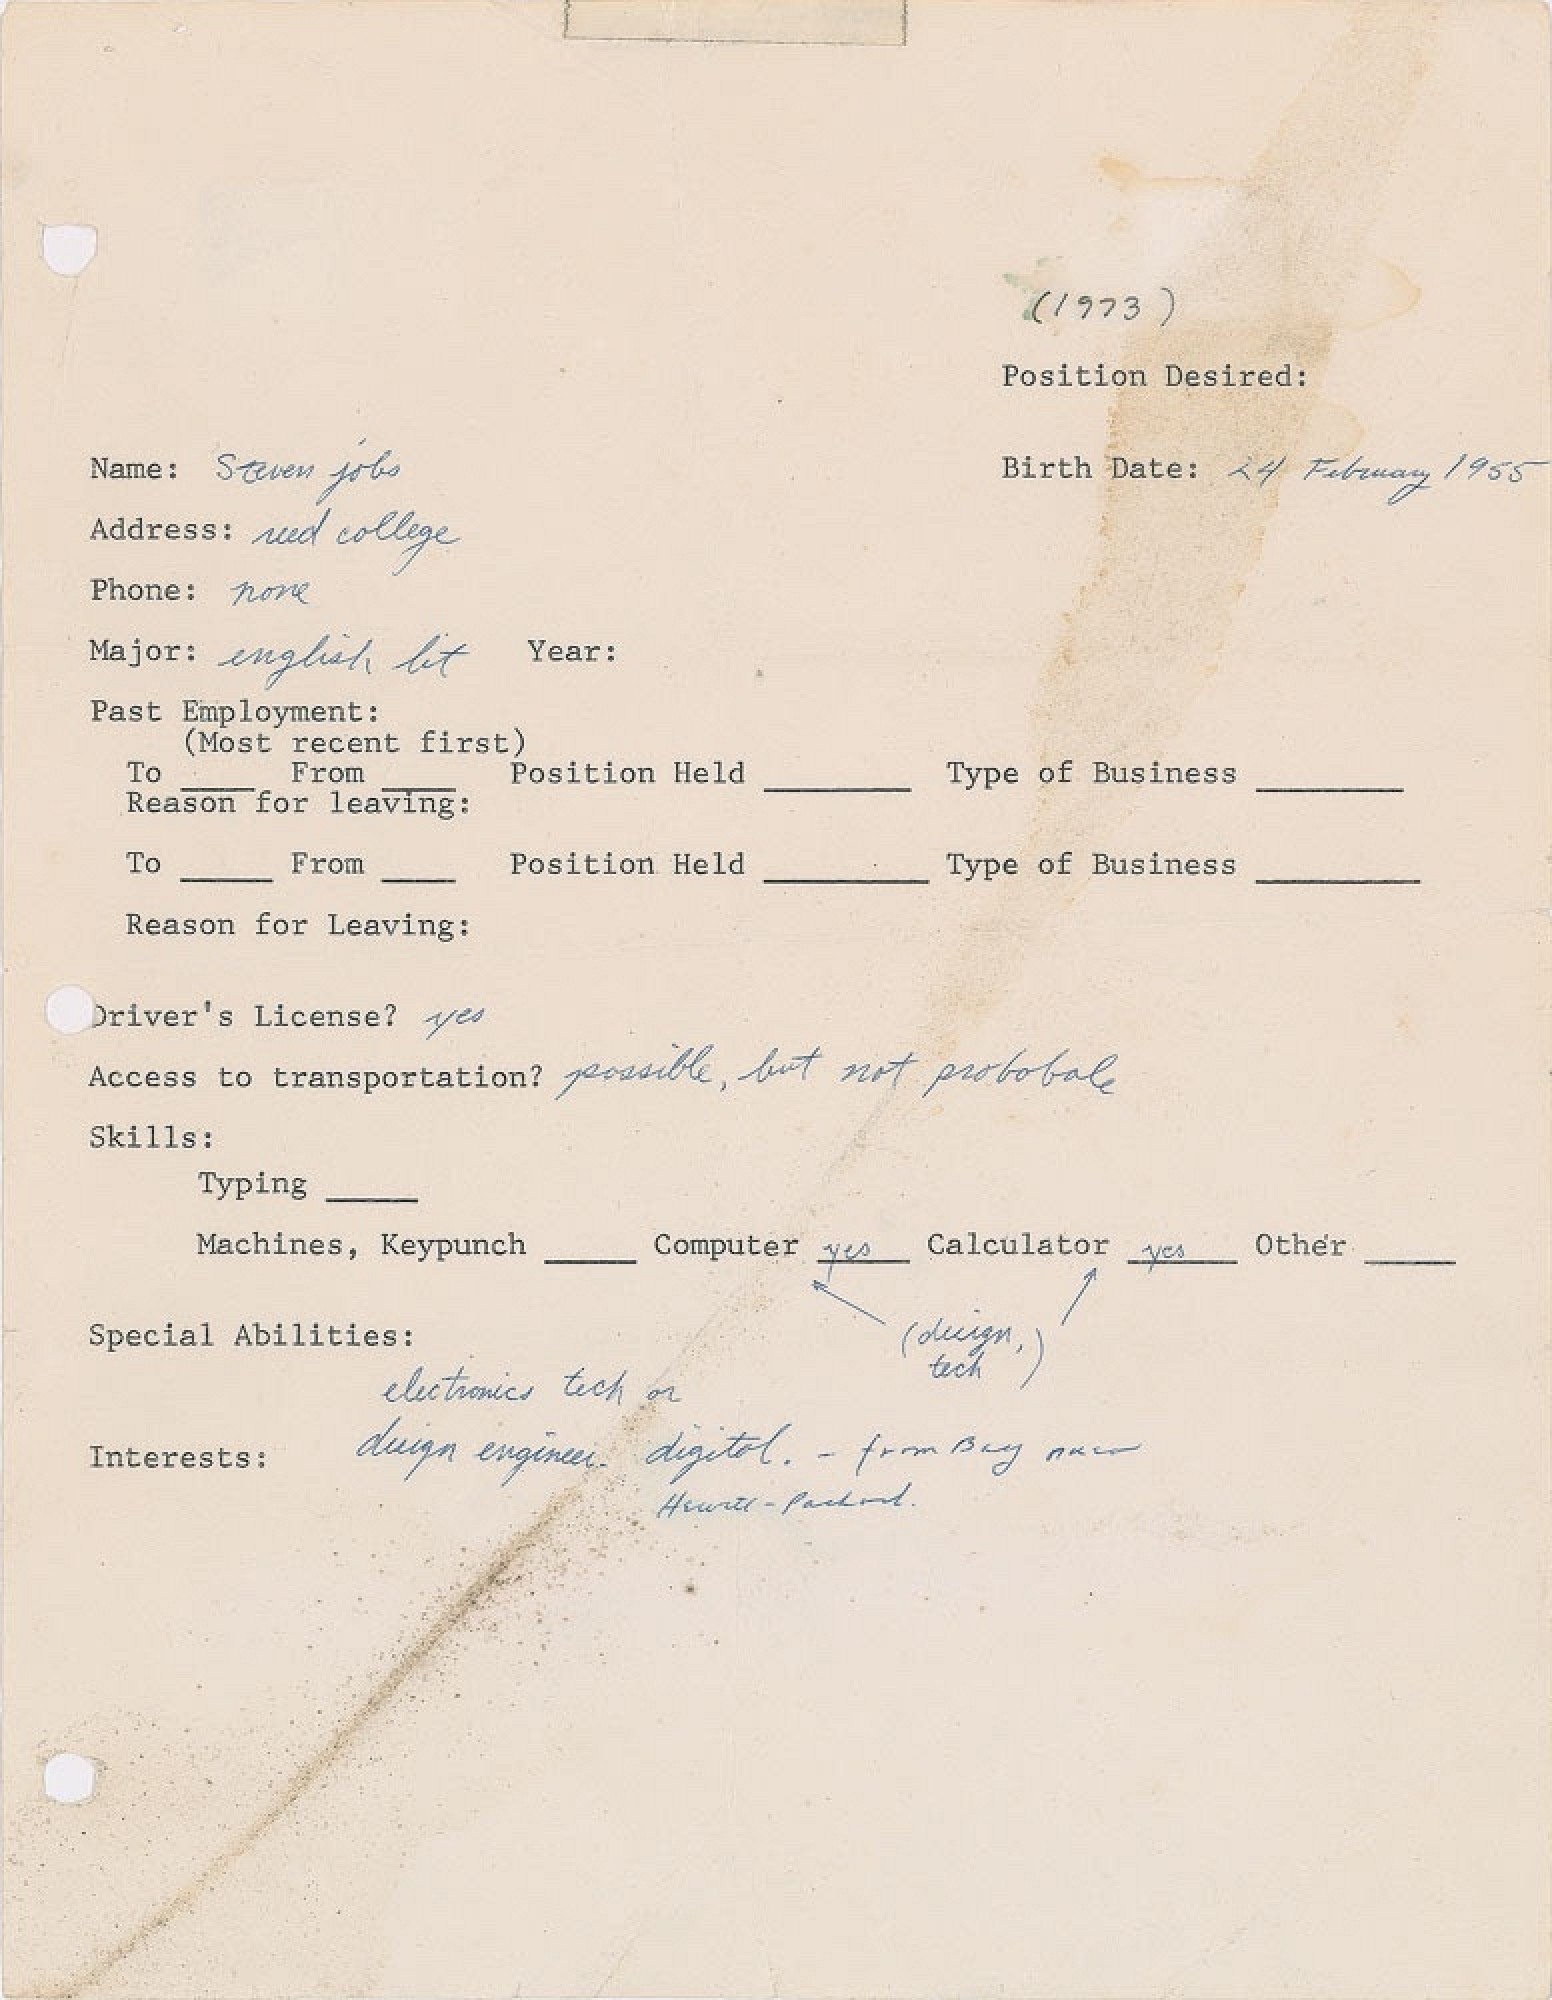 Employment Questionnaire and Two Signatures from Steve Jobs Going up for Auction